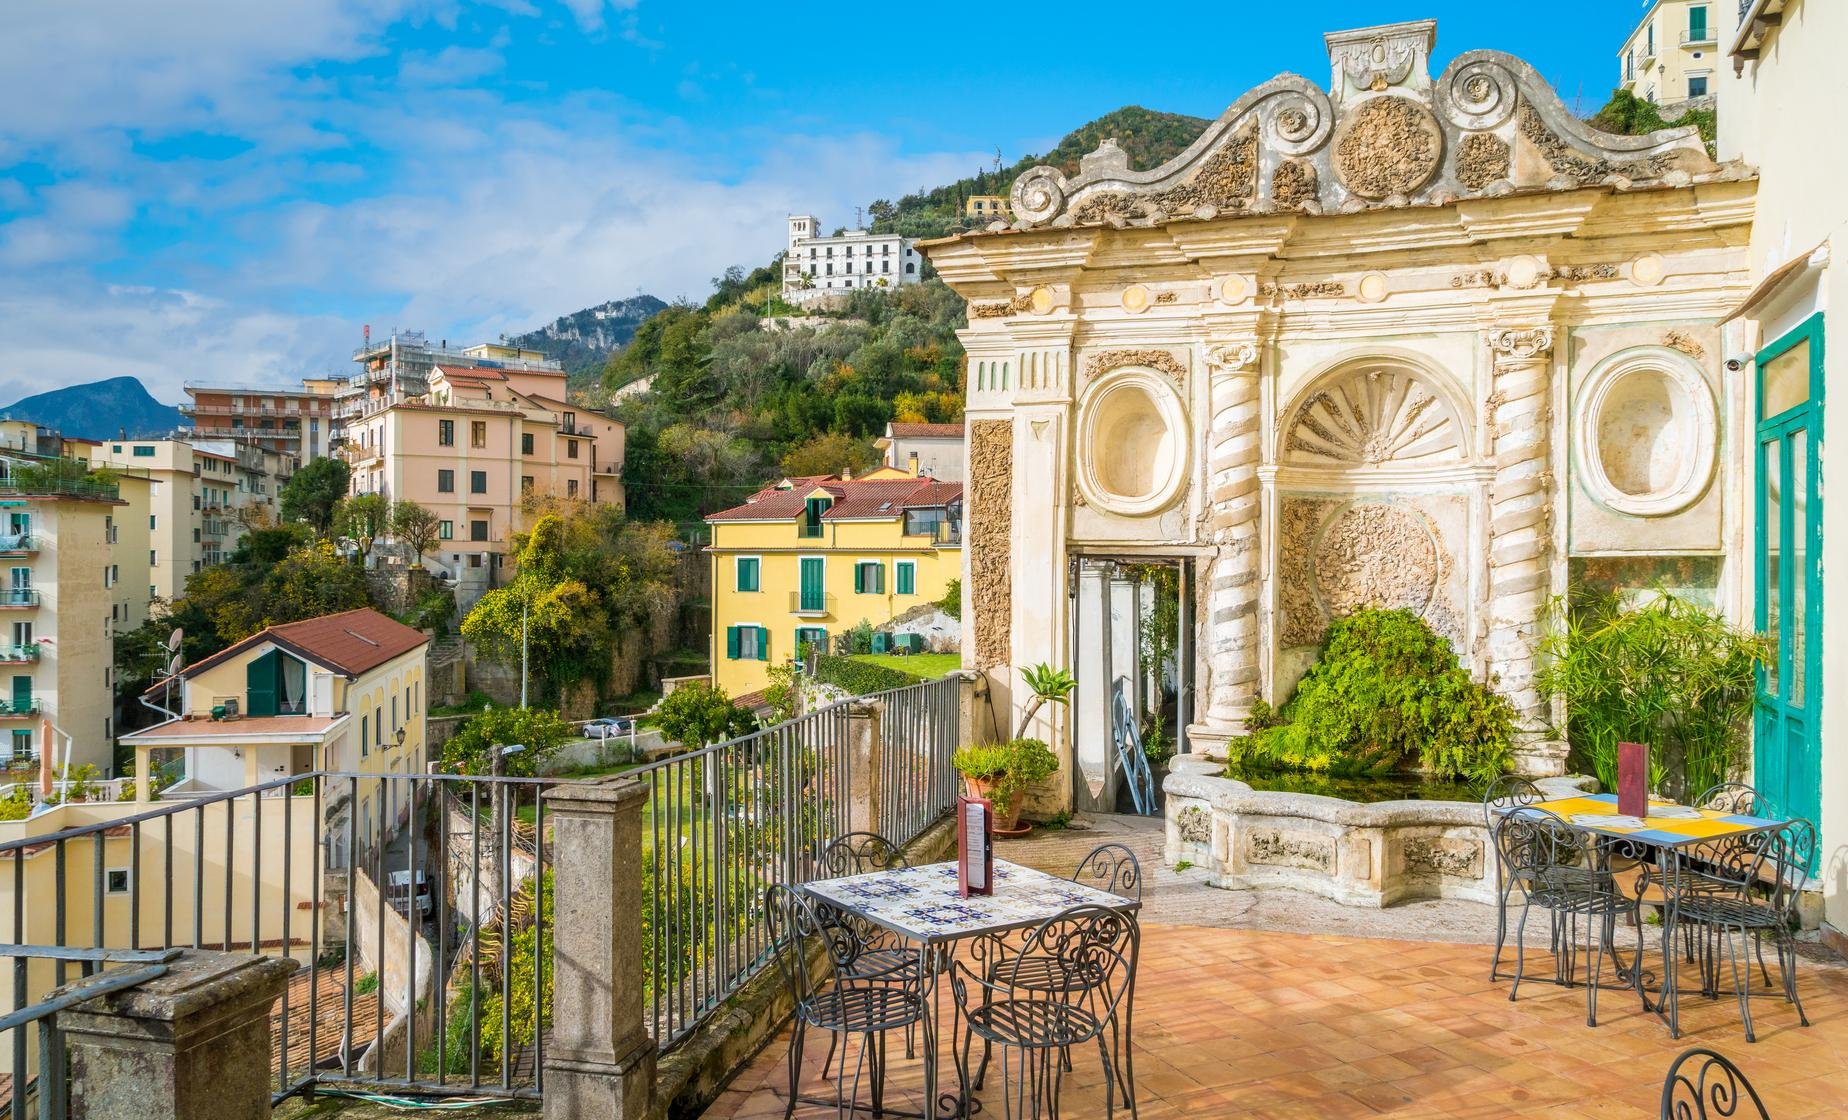 Walking Tour of Historic Salerno